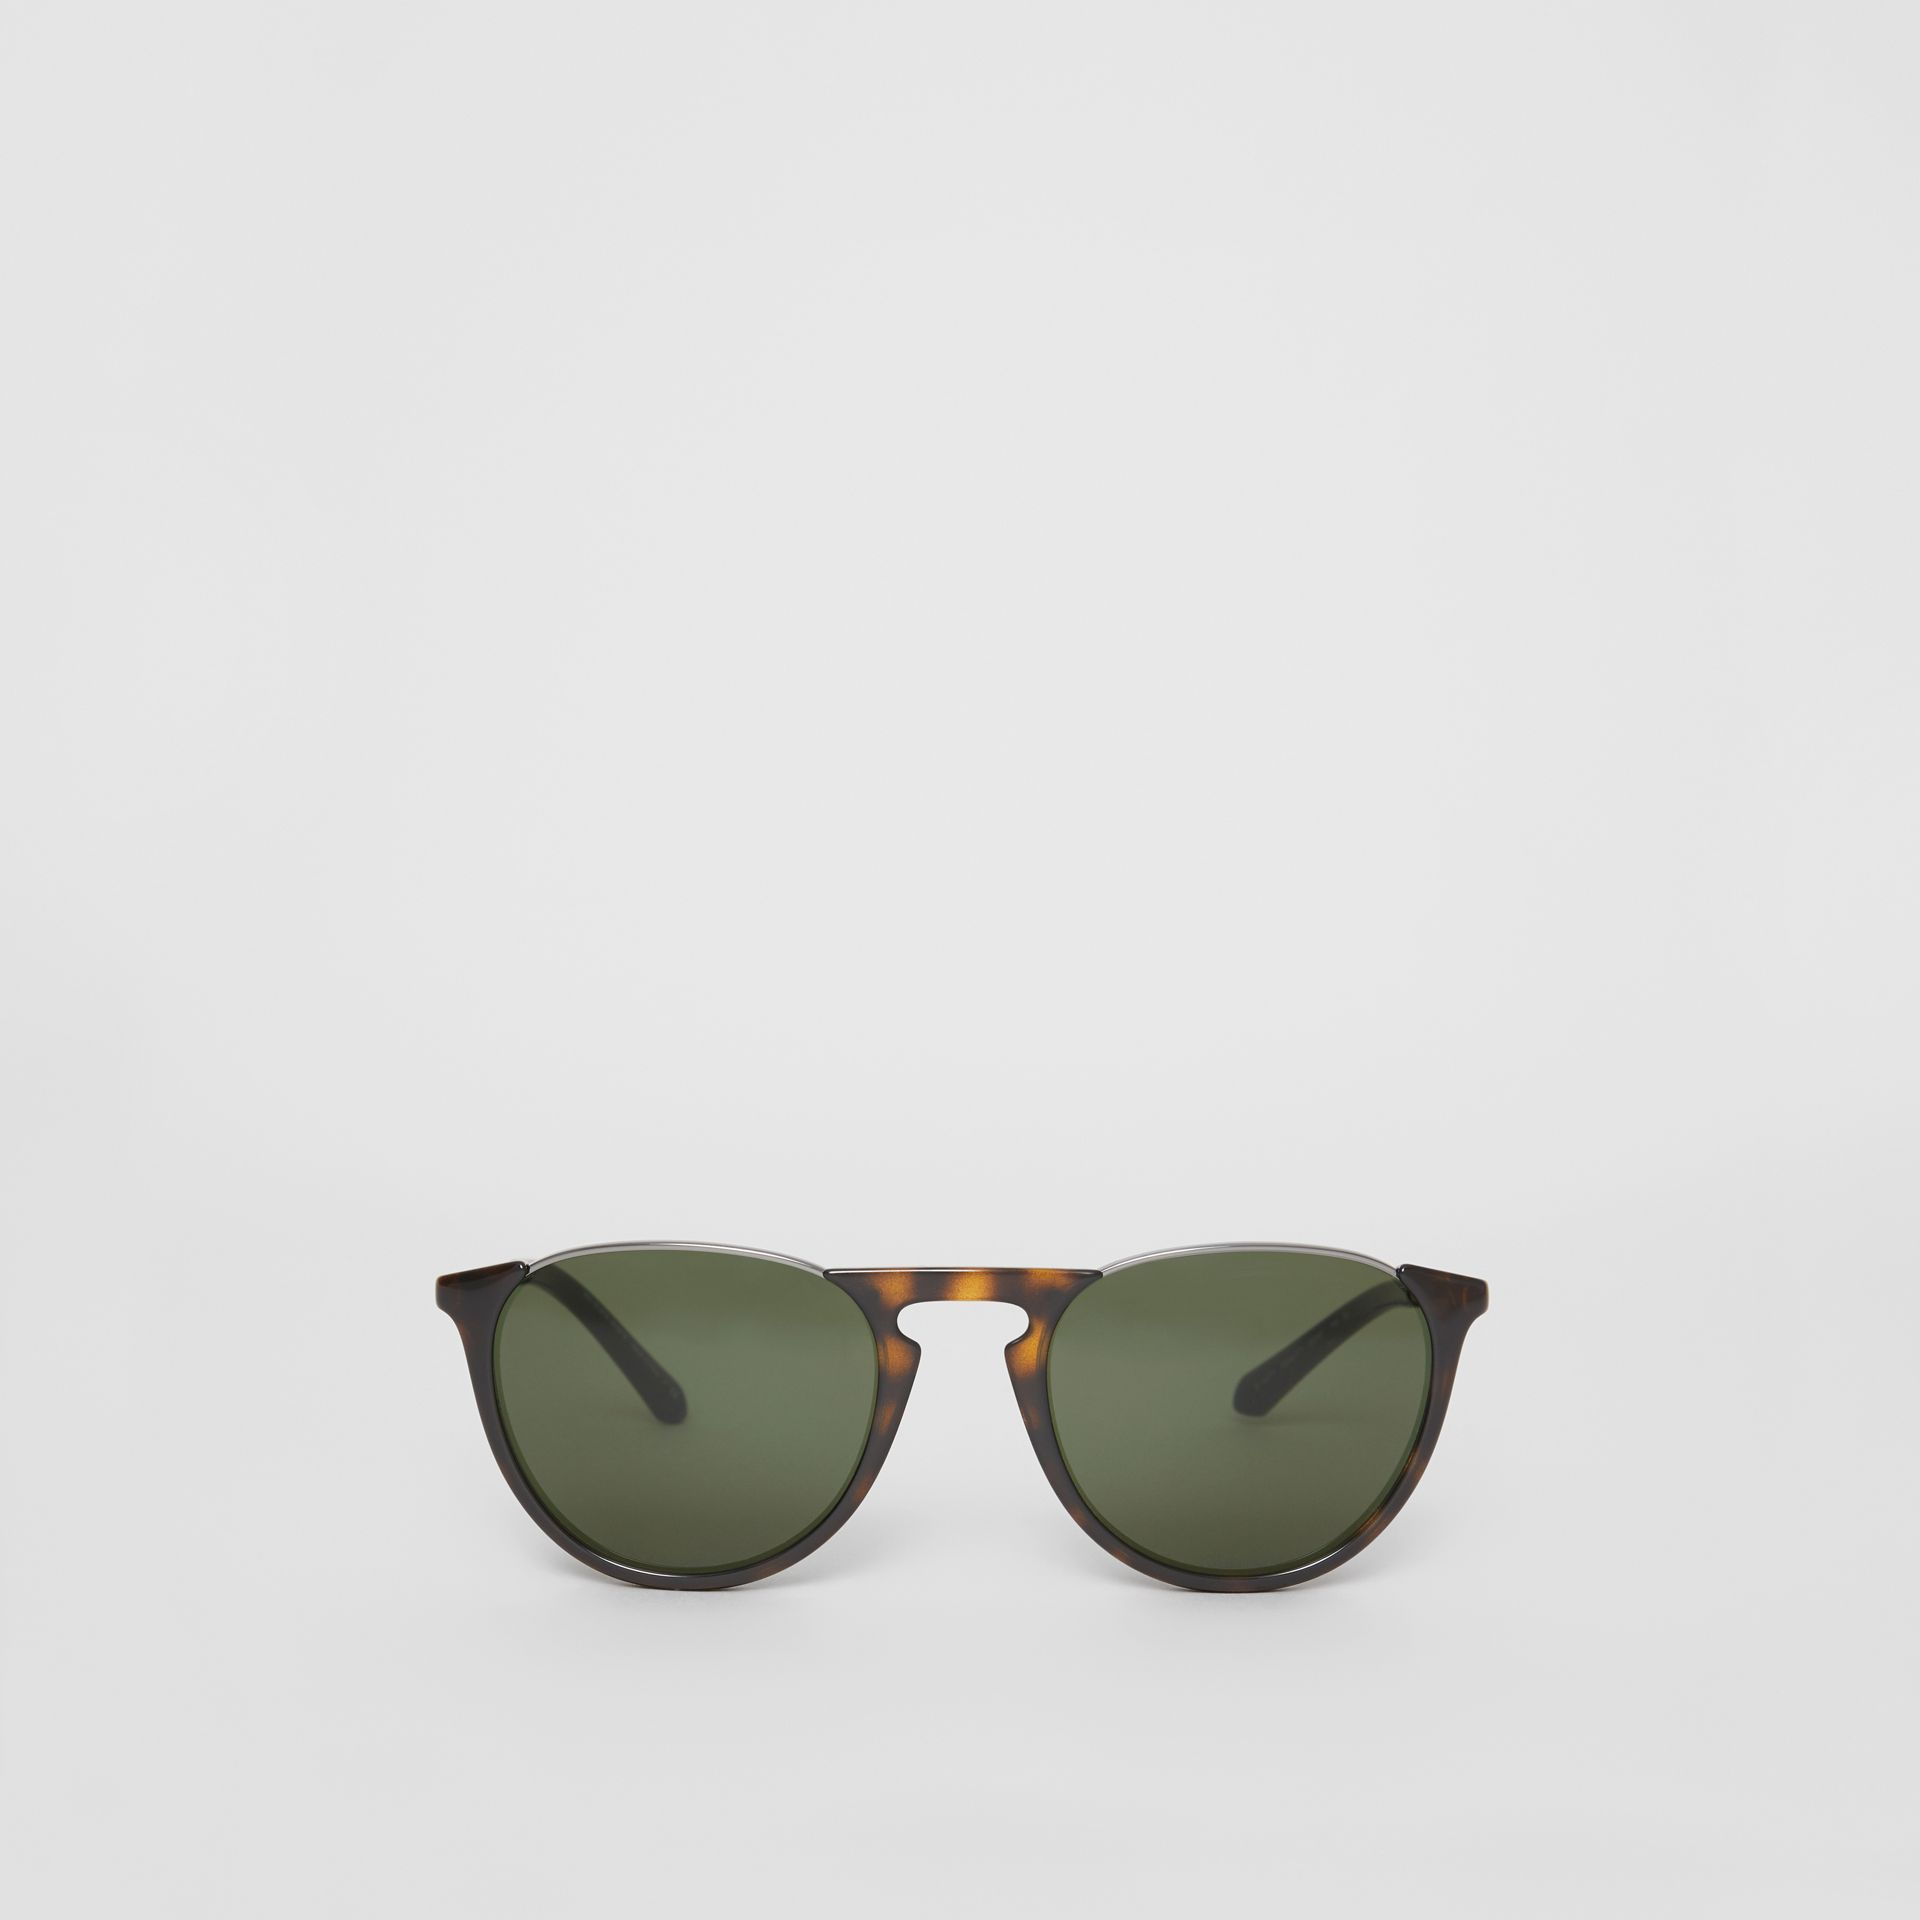 Keyhole Pilot Round Frame Sunglasses in Tortoise Shell - Men | Burberry - gallery image 0